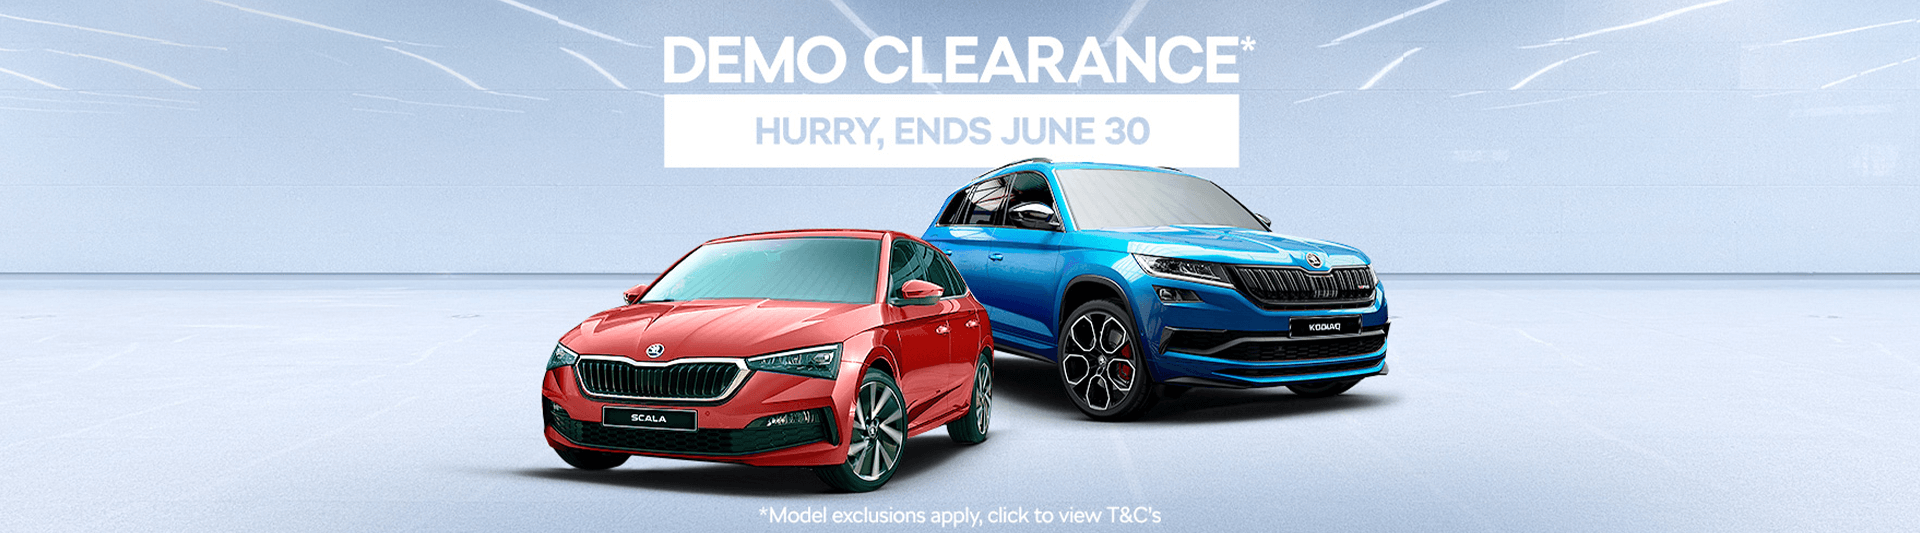 Demo Clearance - Hurry, ends June 30